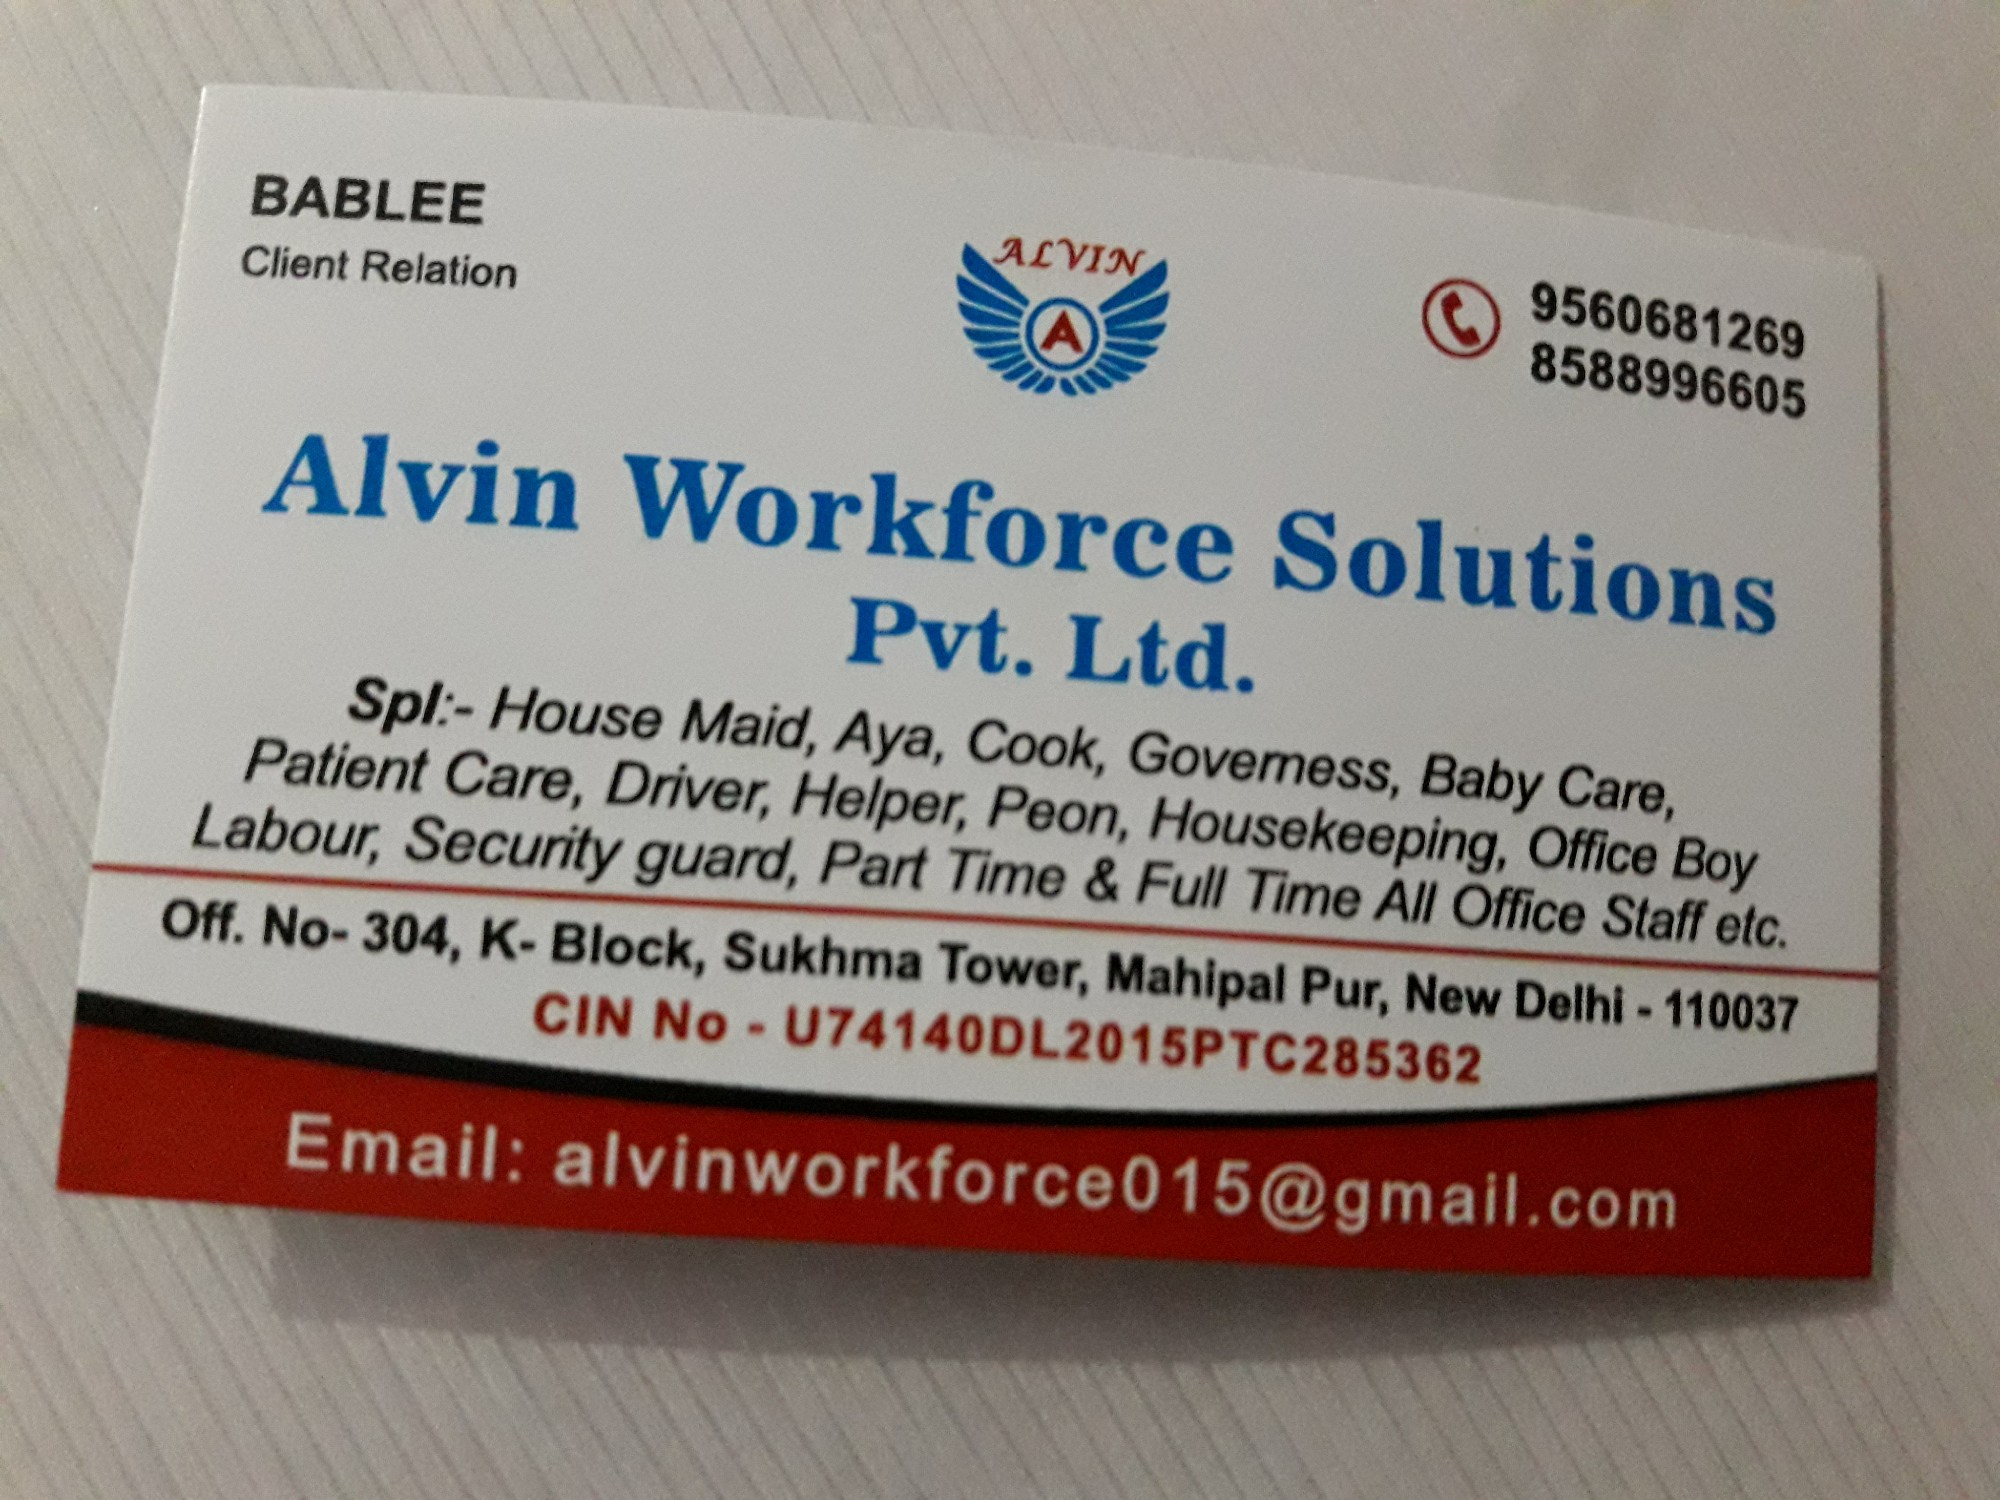 Alvin Workforce Solutions Pvt  Ltd  in Mahipalpur, Delhi